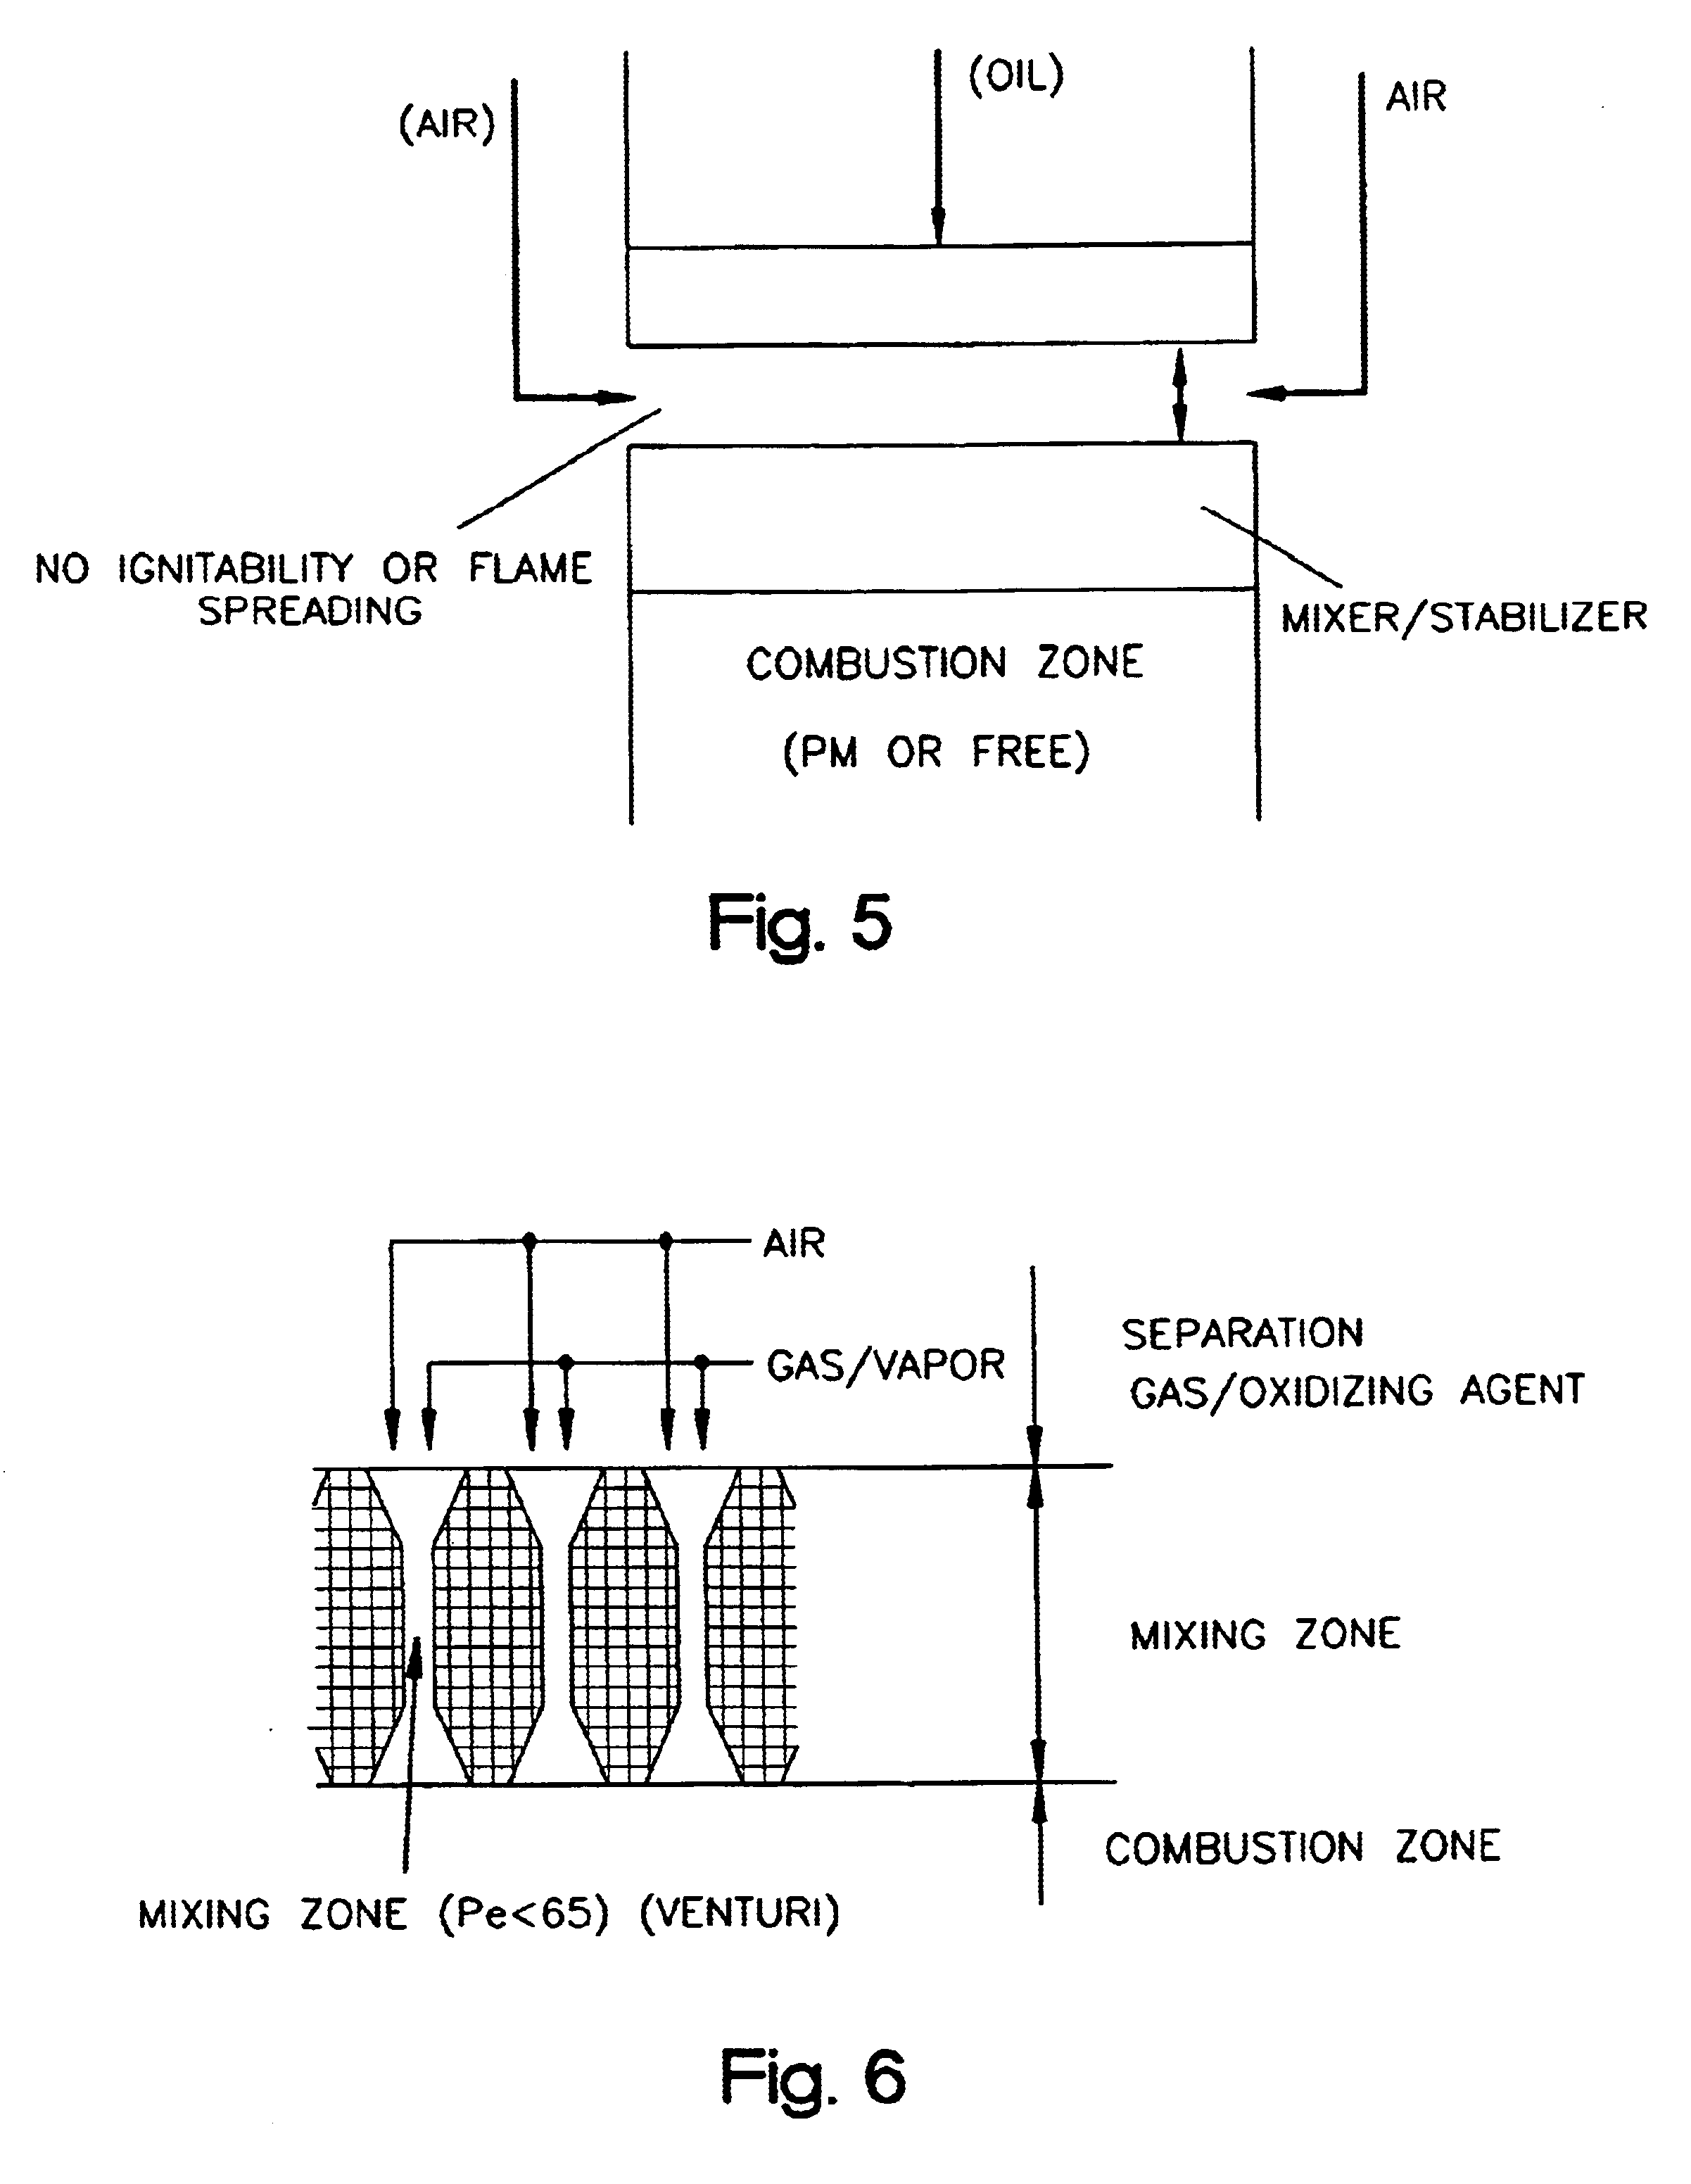 non conventional methods of gas liquefaction Information about environmental regulations for conventional oil and gas non-mining conventional oil and gas conventional petroleum resources are oil and gas found in sandstone condensate and natural gas the products that can be refined include liquefied petroleum gas, fuel oils.